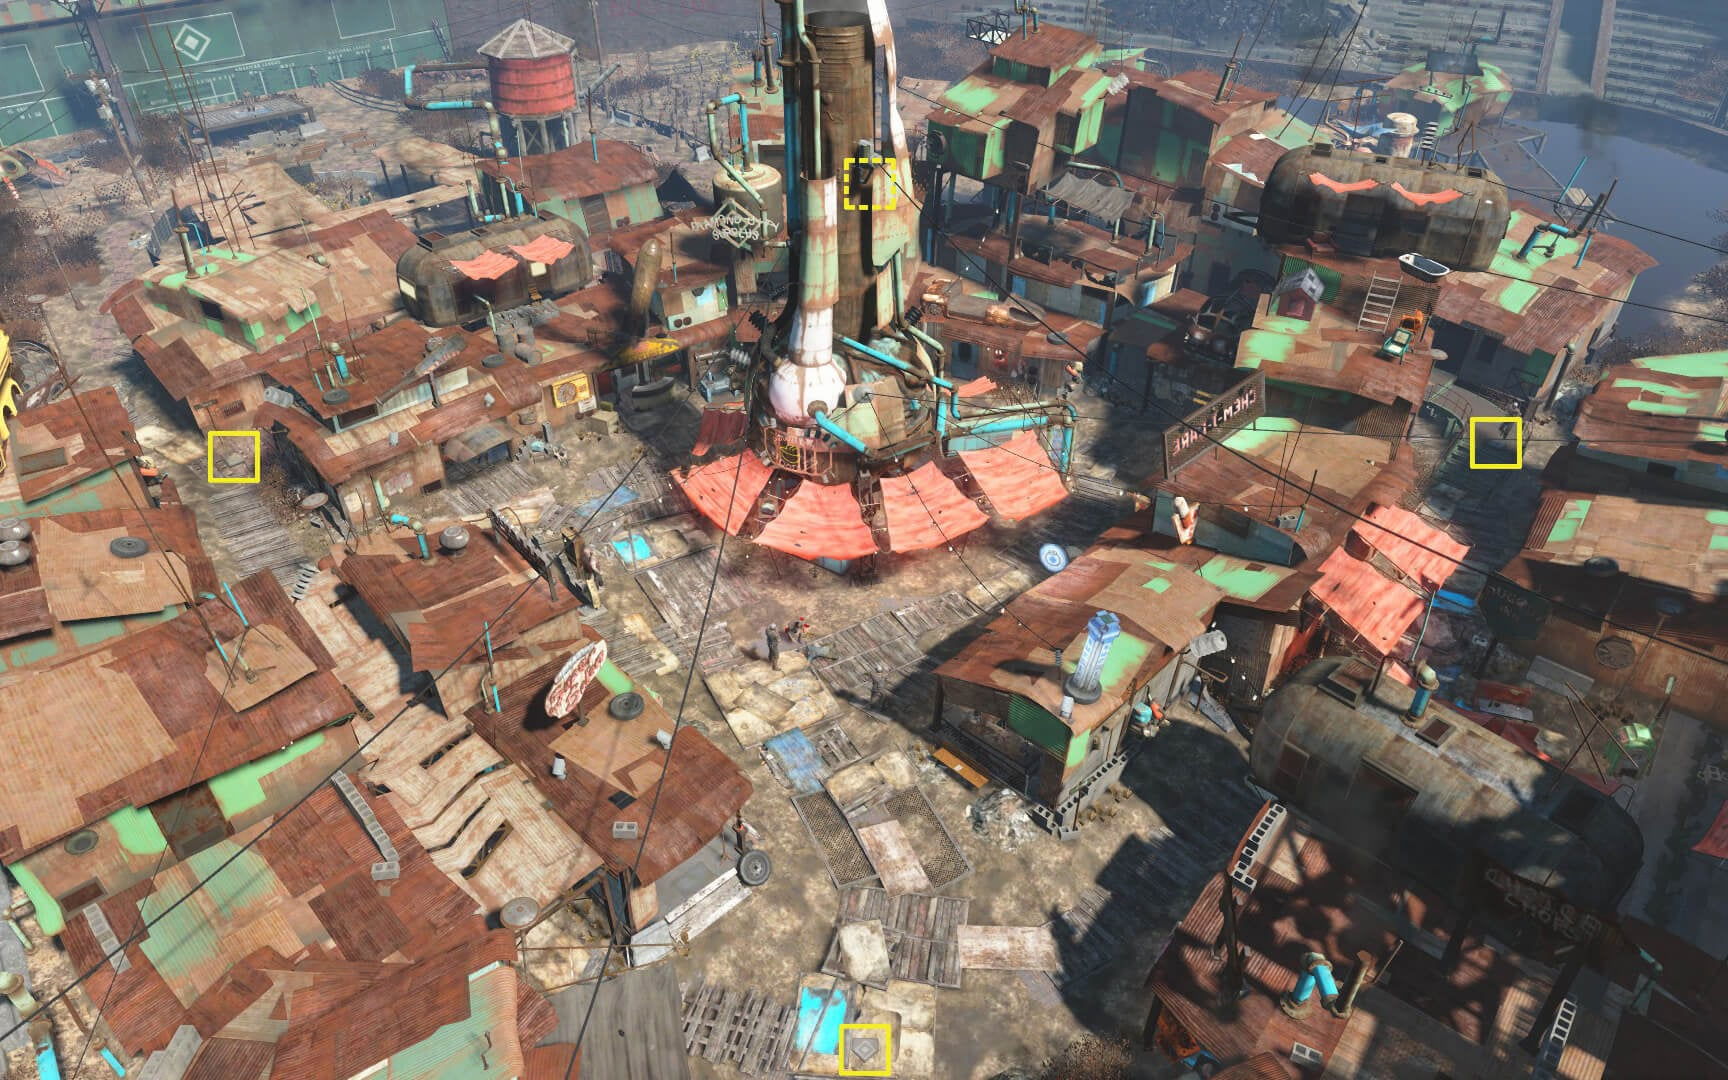 Start at the bottom, and head counter clockwise to complete the diamond. Credit to Fallout Wikia for the image.